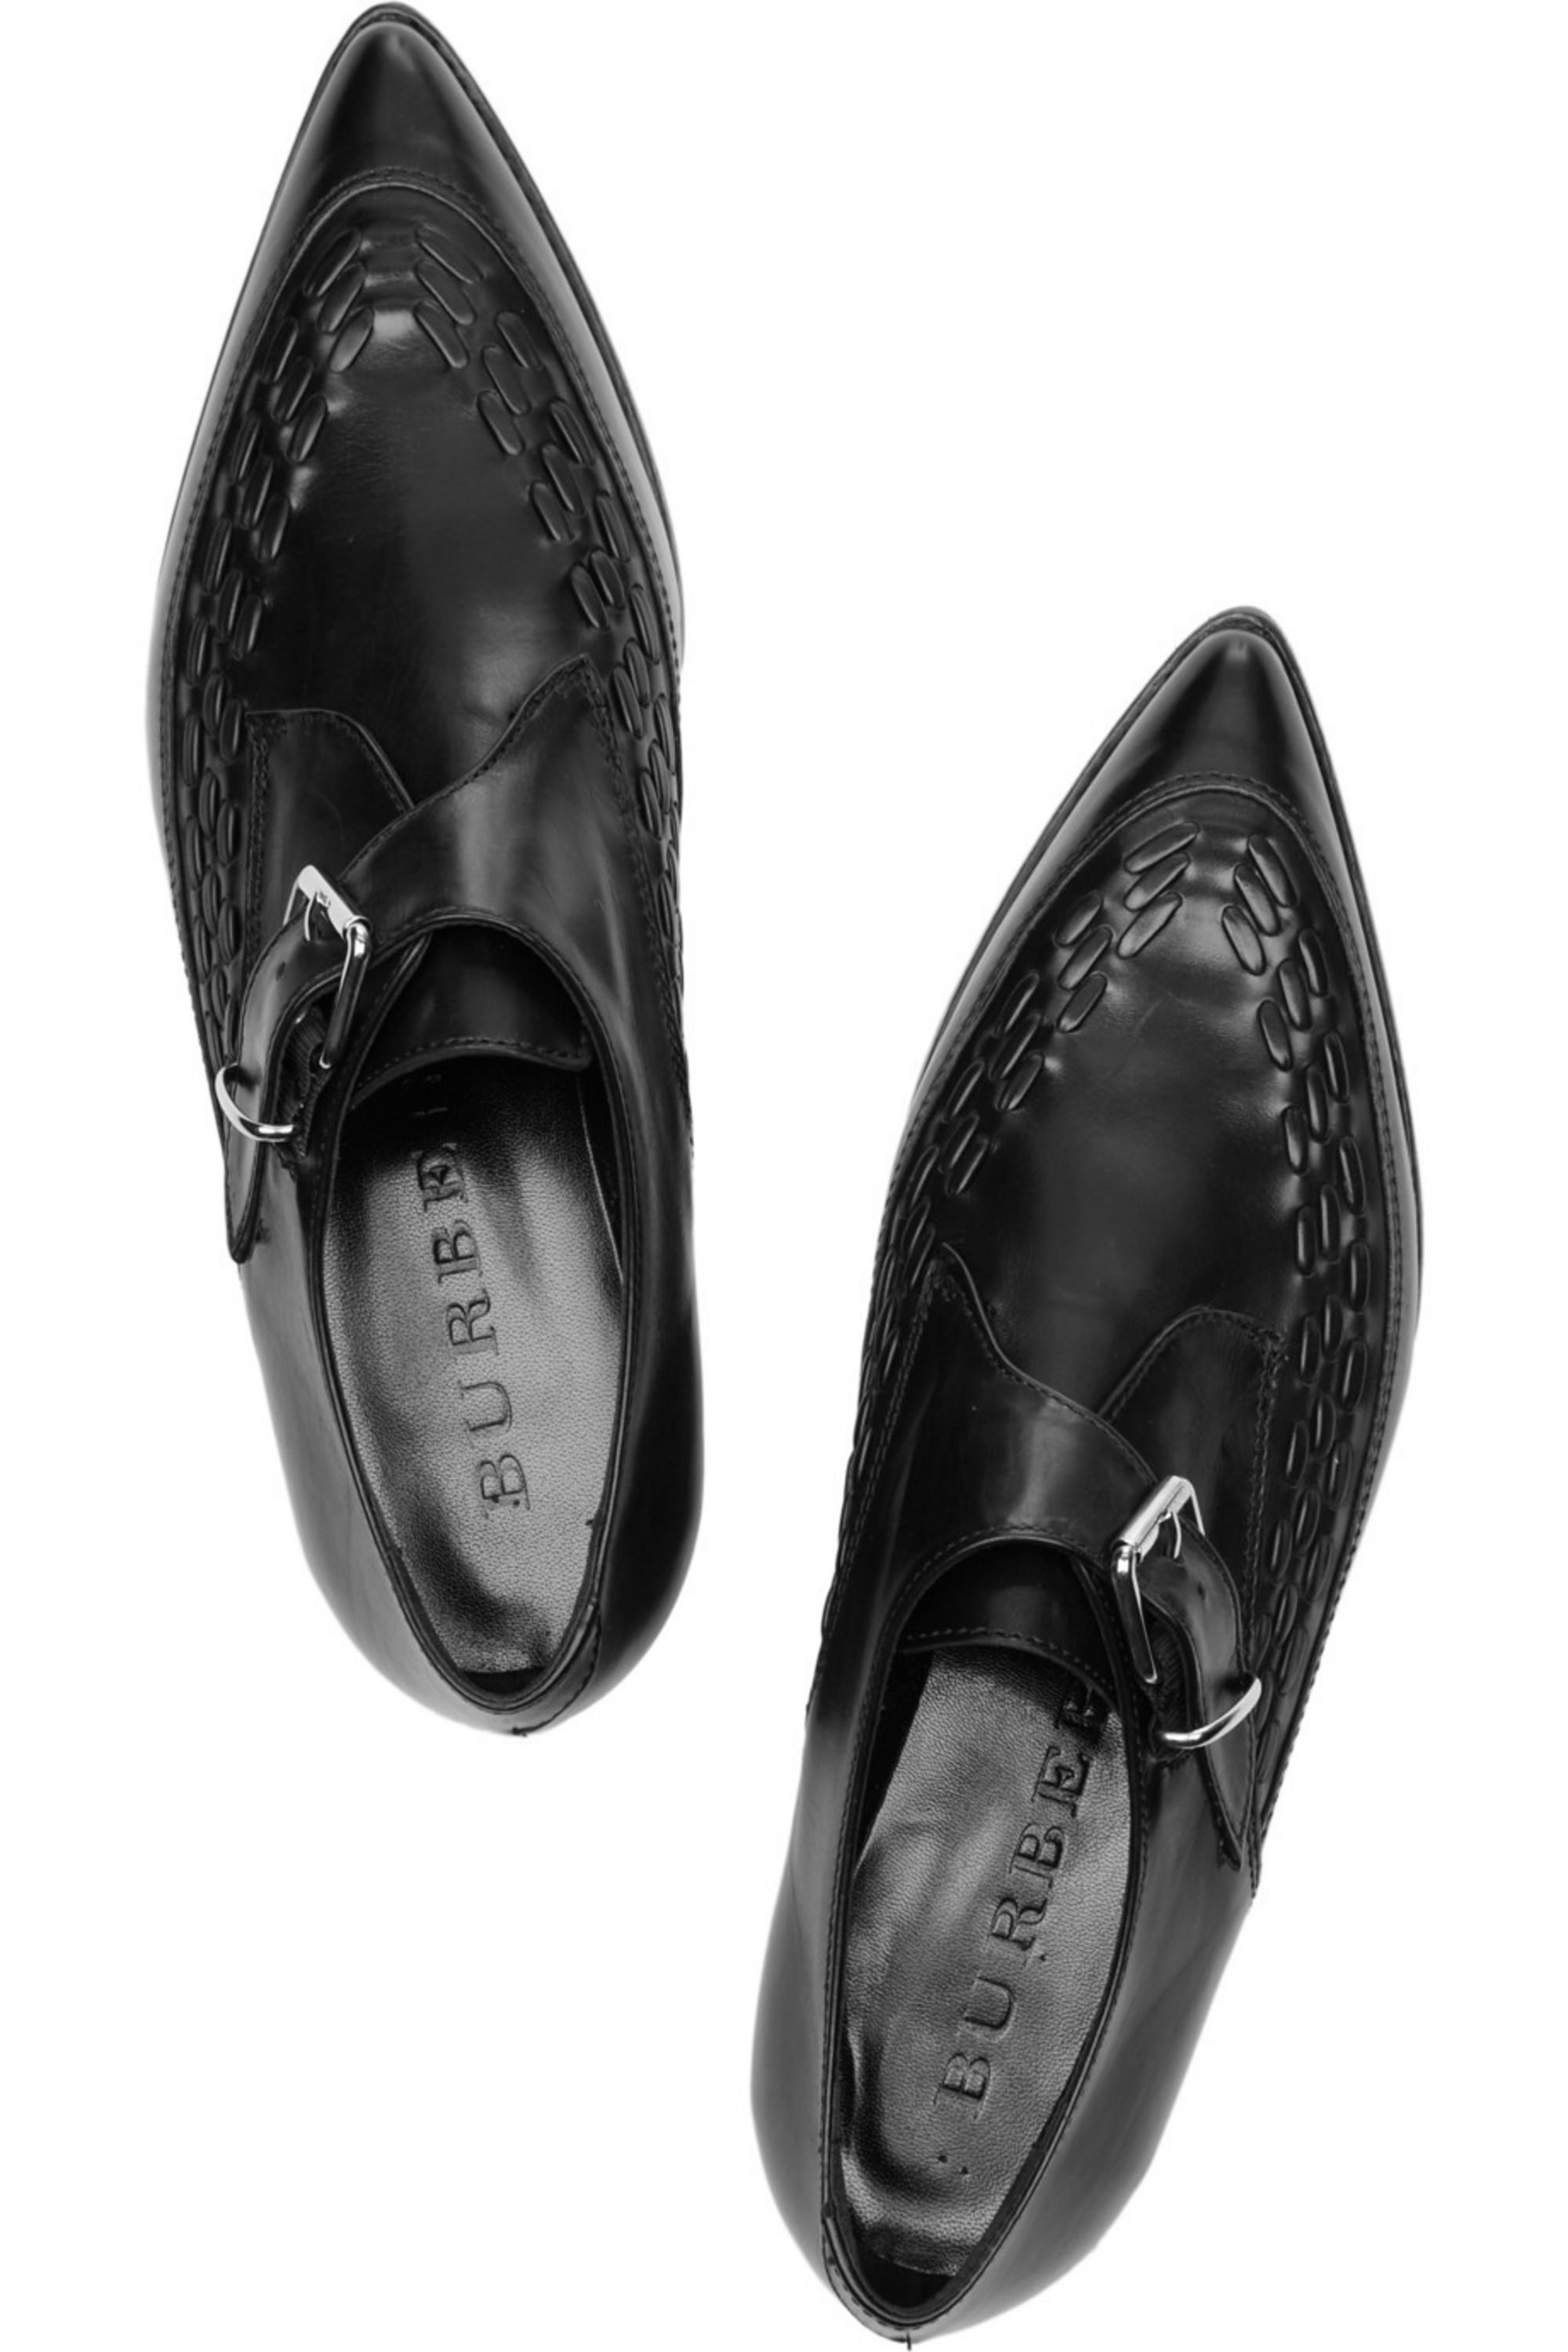 Burberry Monk-strap leather shoes